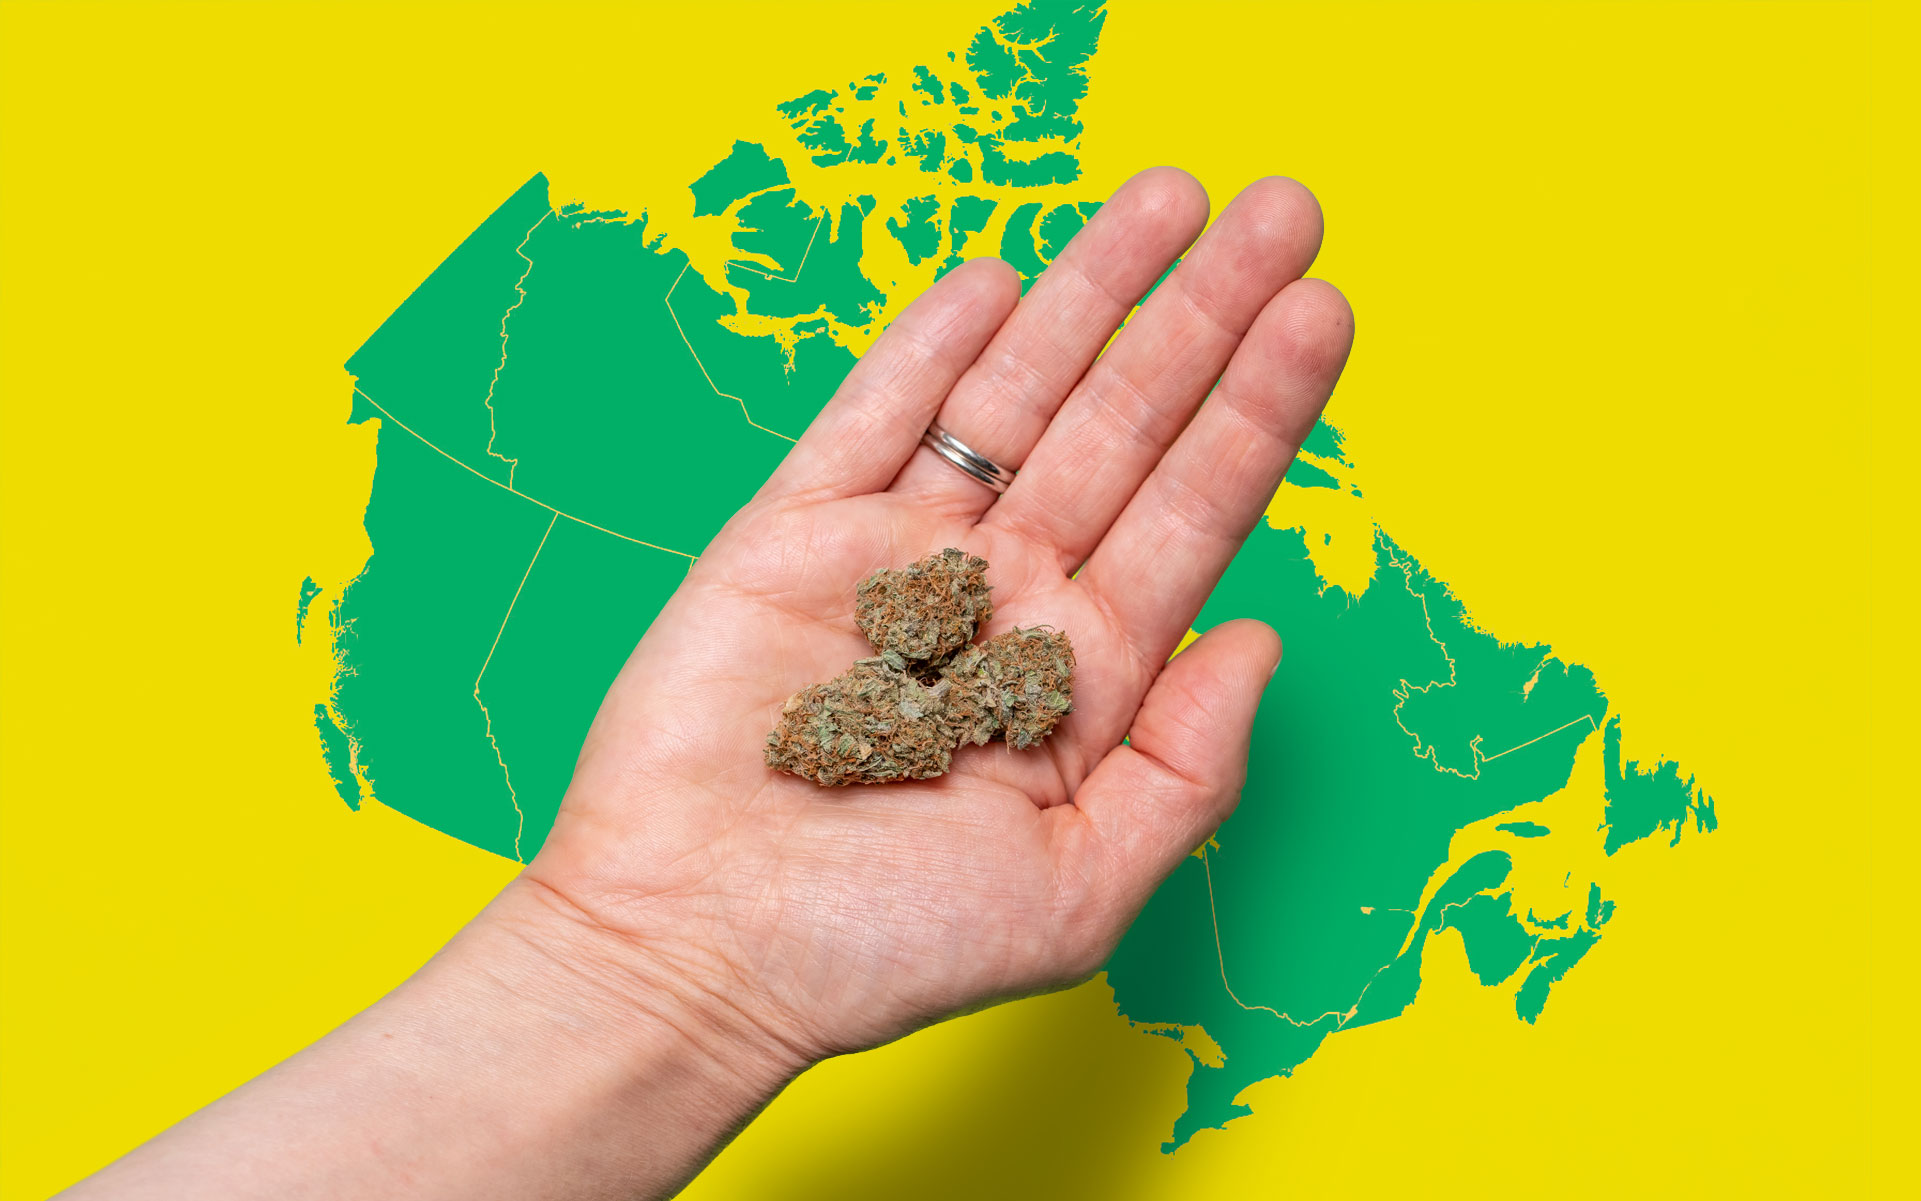 Canada map and hand holding buds